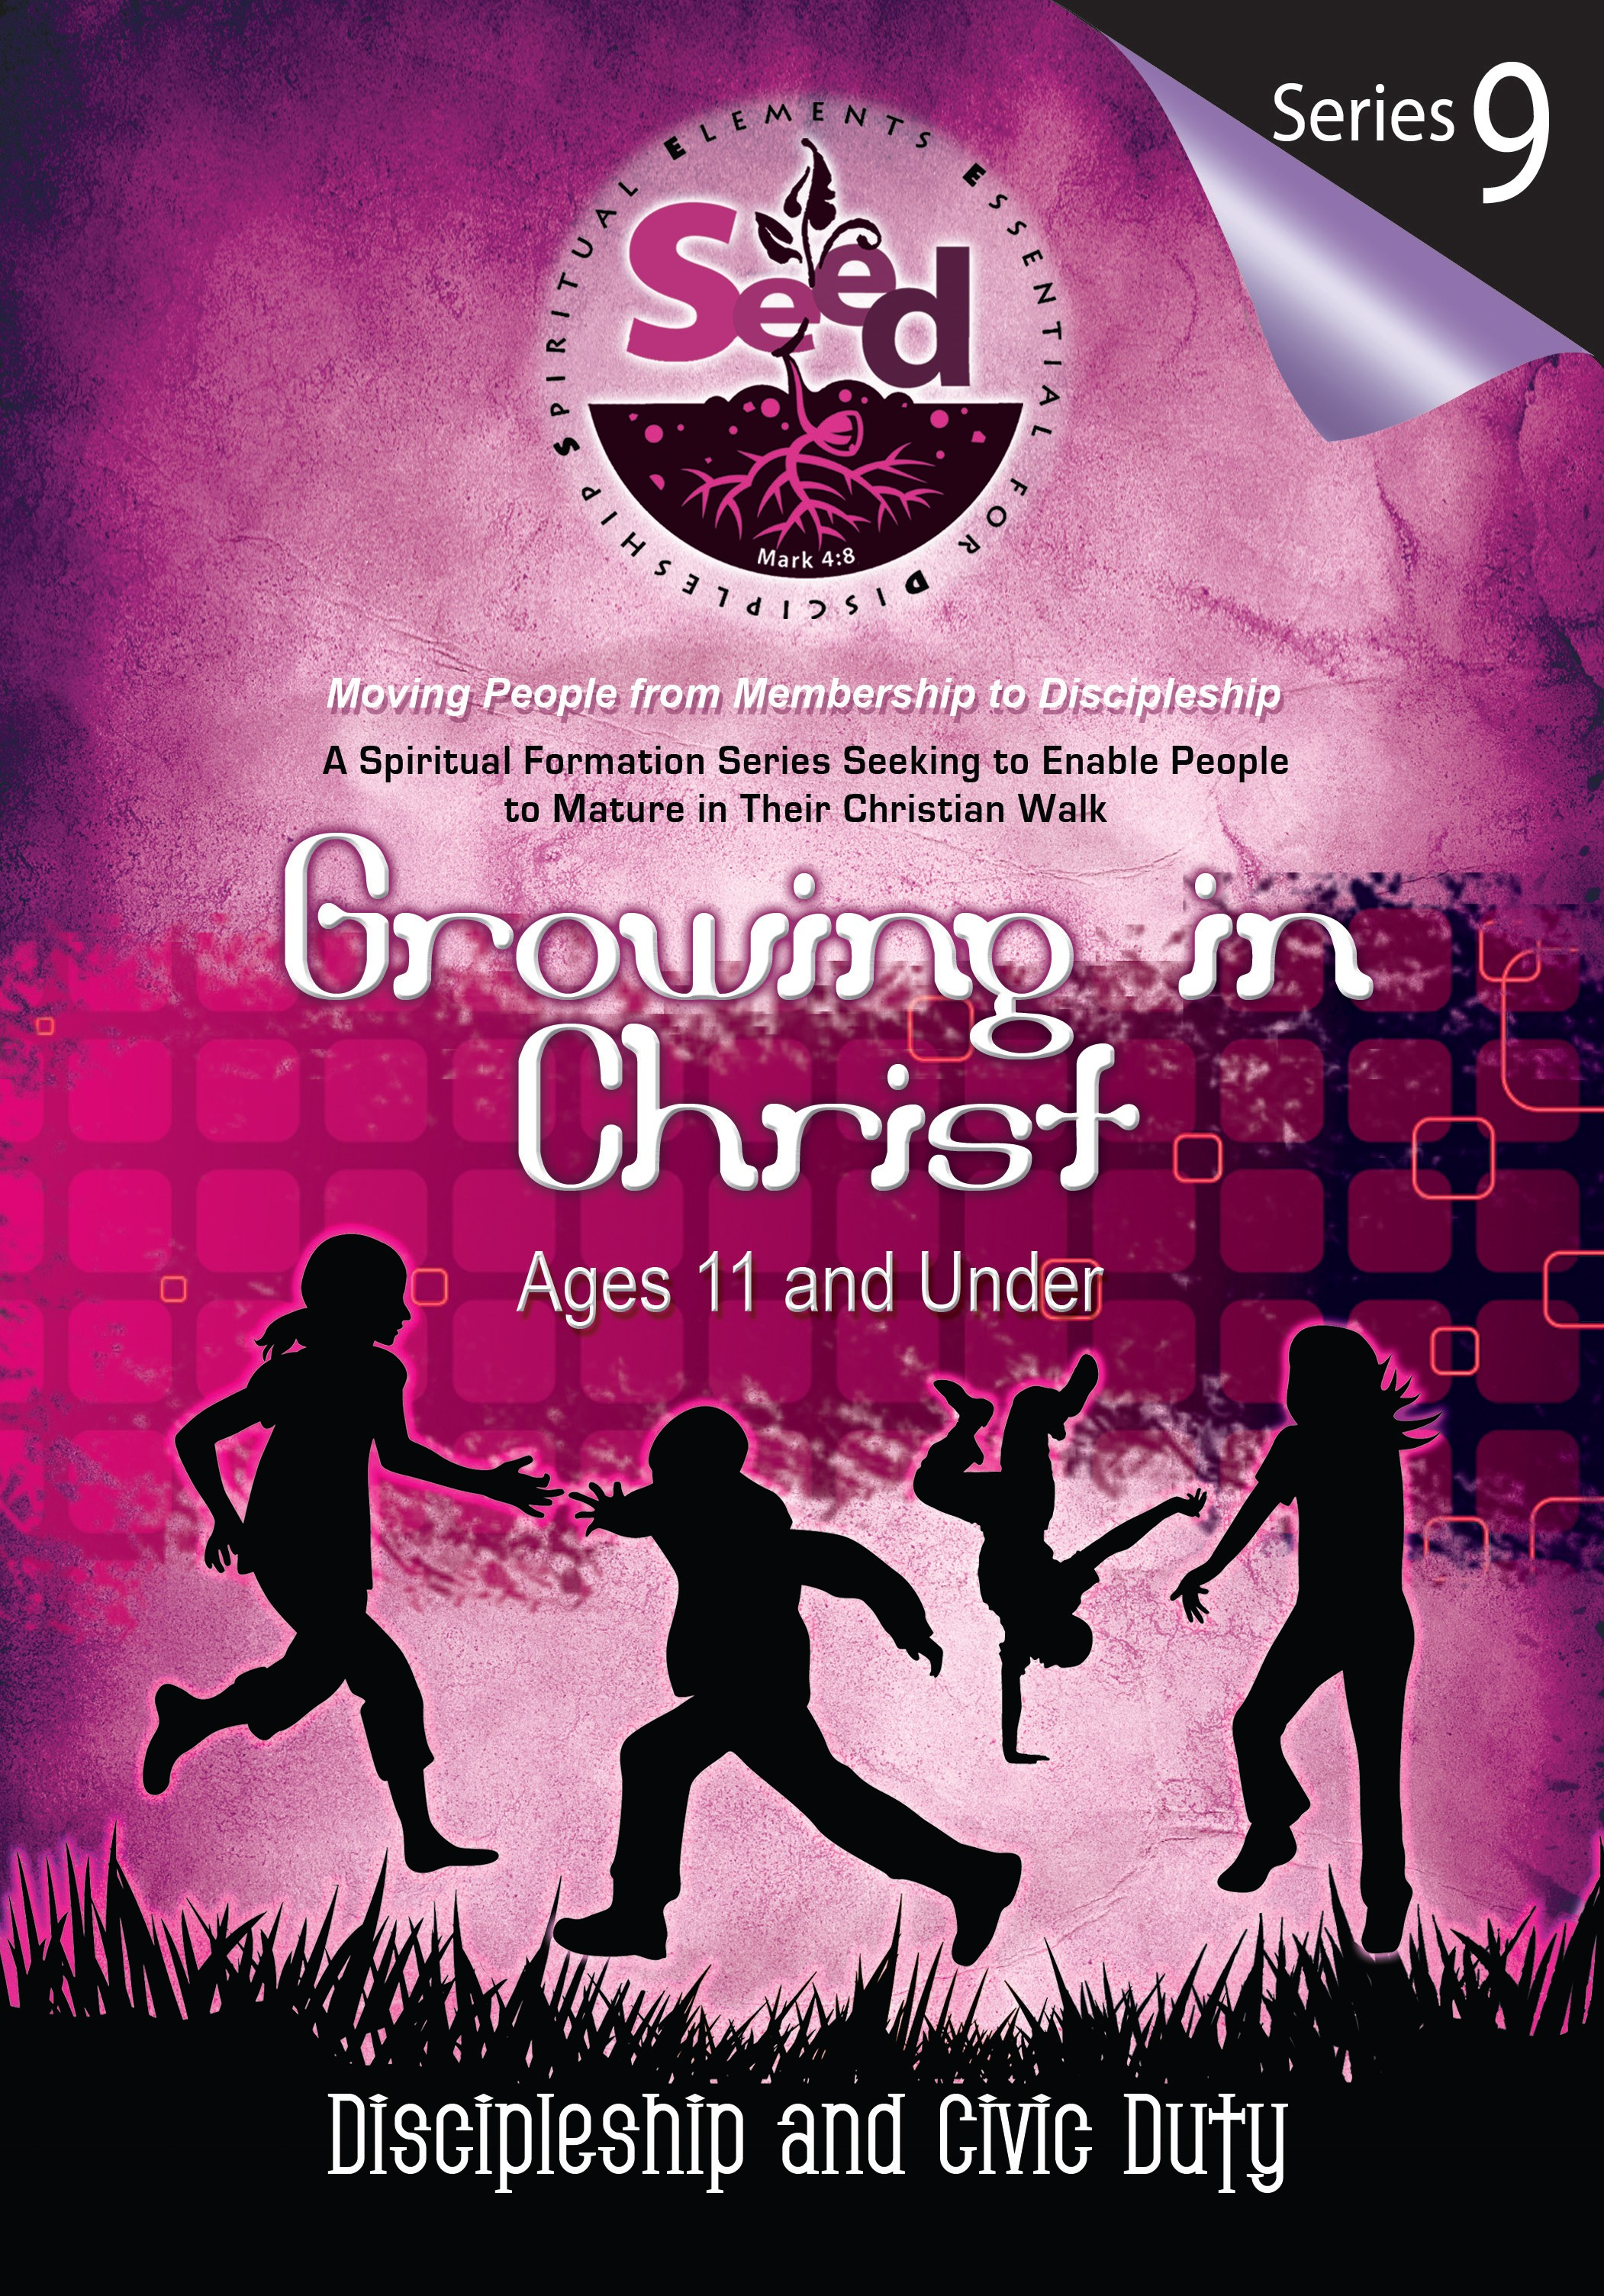 SEED Growing in Christ (Ages 11 and Under): Series 9: Discipleship and Civic Duty